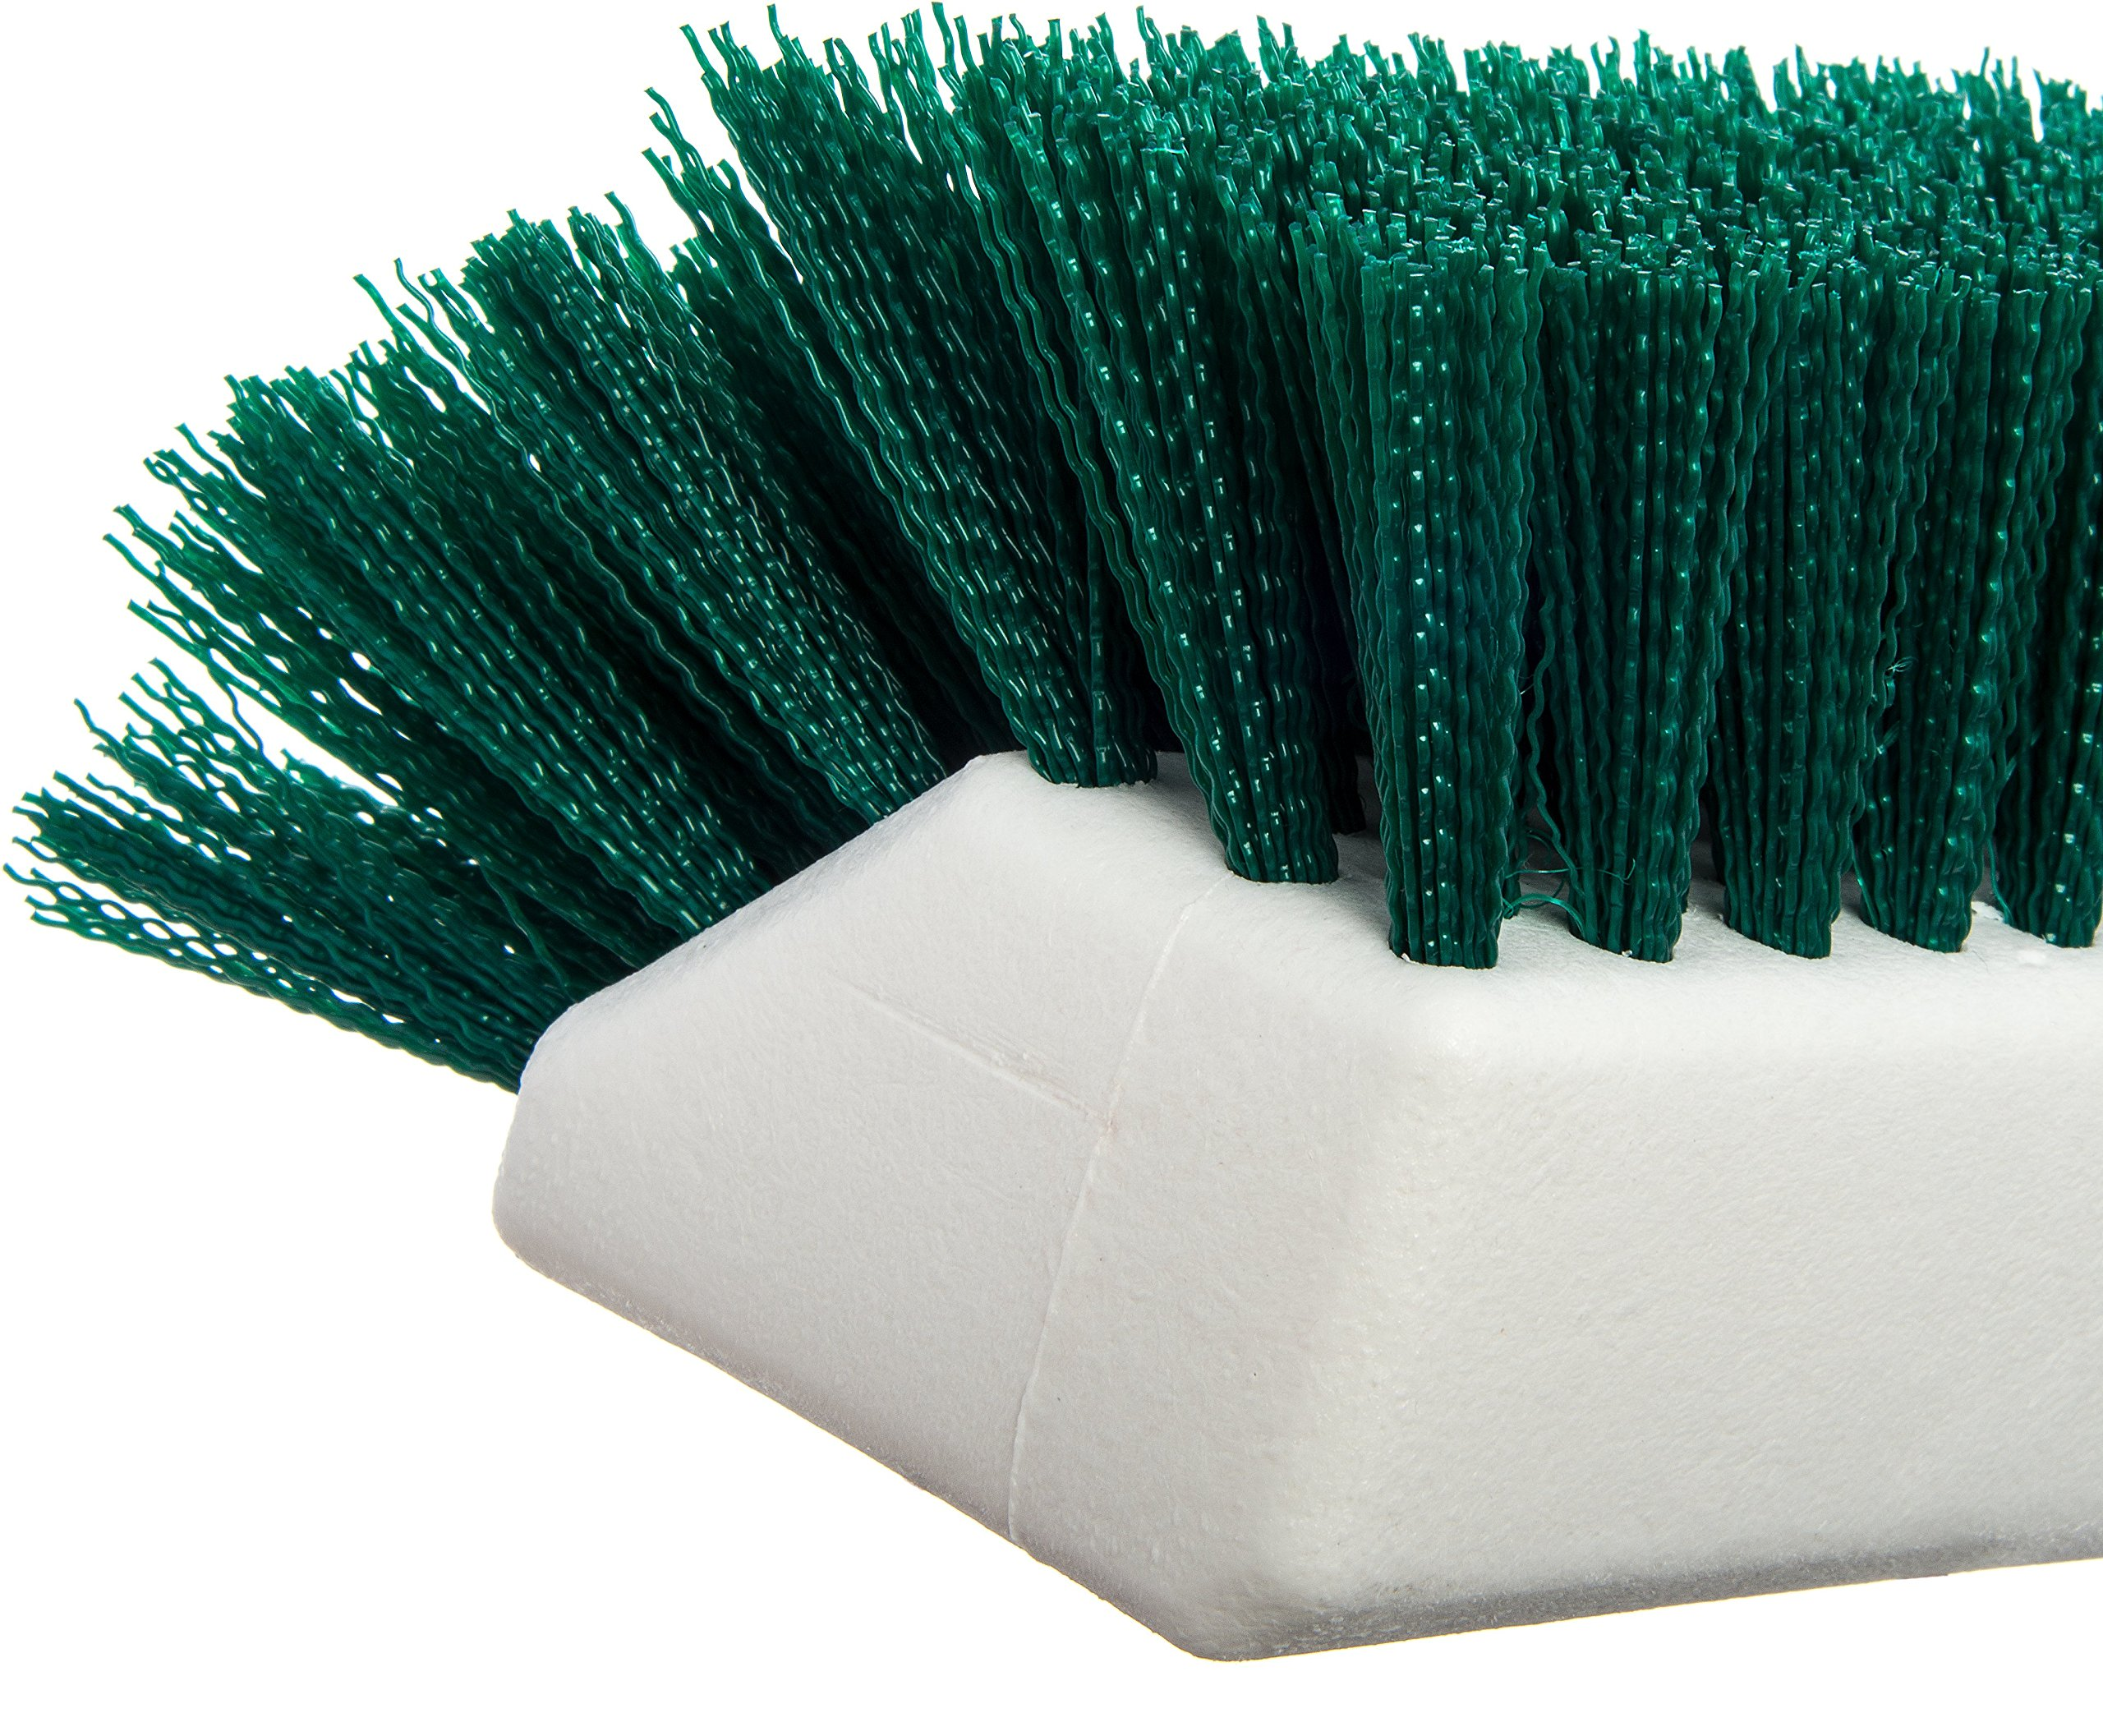 Carlisle 4042309 Hi-Lo Floor Scrub Brush, Green (Pack of 12) by Carlisle (Image #2)